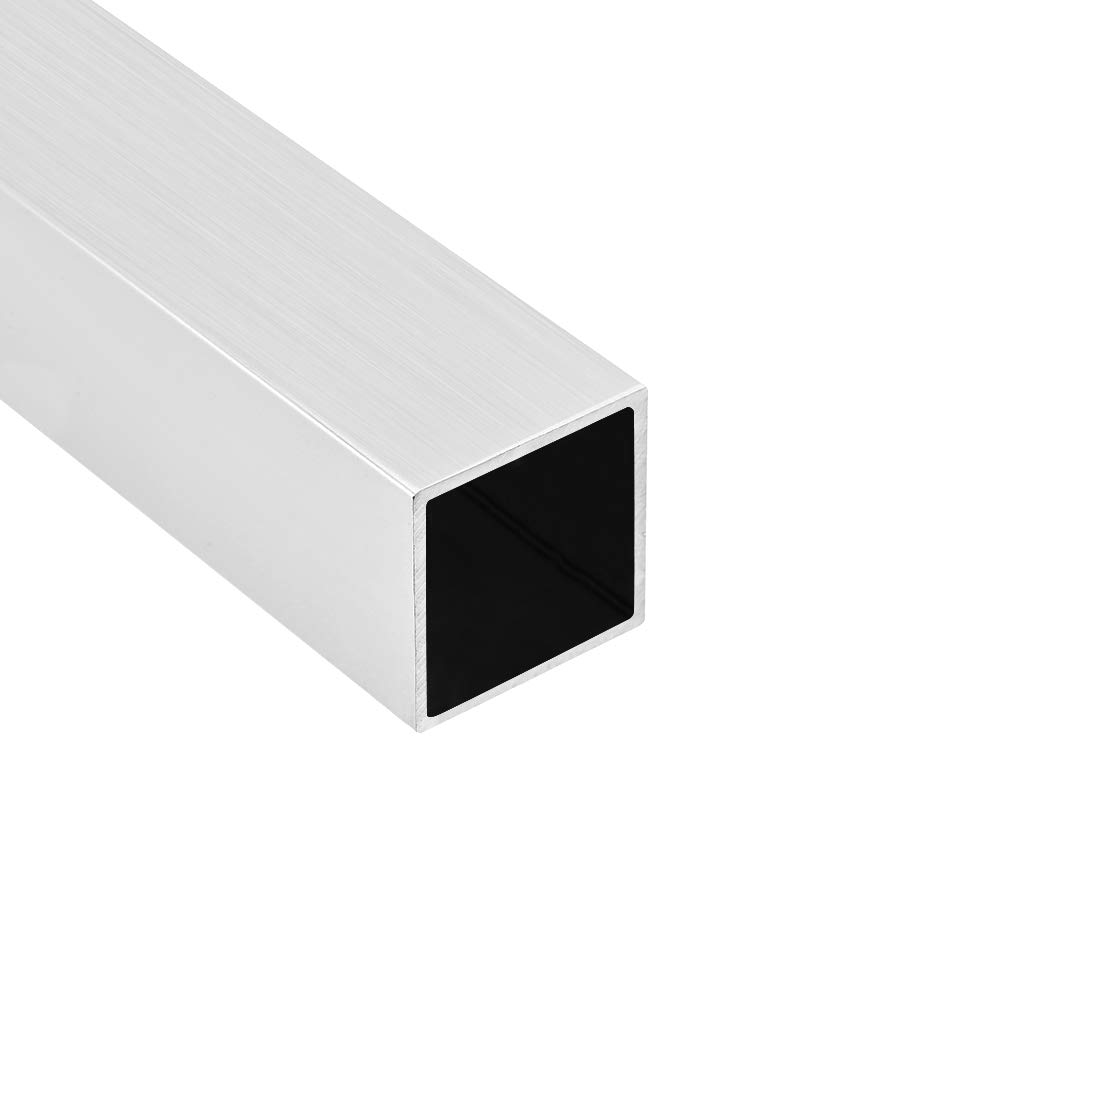 25mmx25mmx0.8mm Wall Thickness 200mm Length Seamless Straight Pipe Tubing 2 Pcs uxcell 6063 Aluminum Square Tube